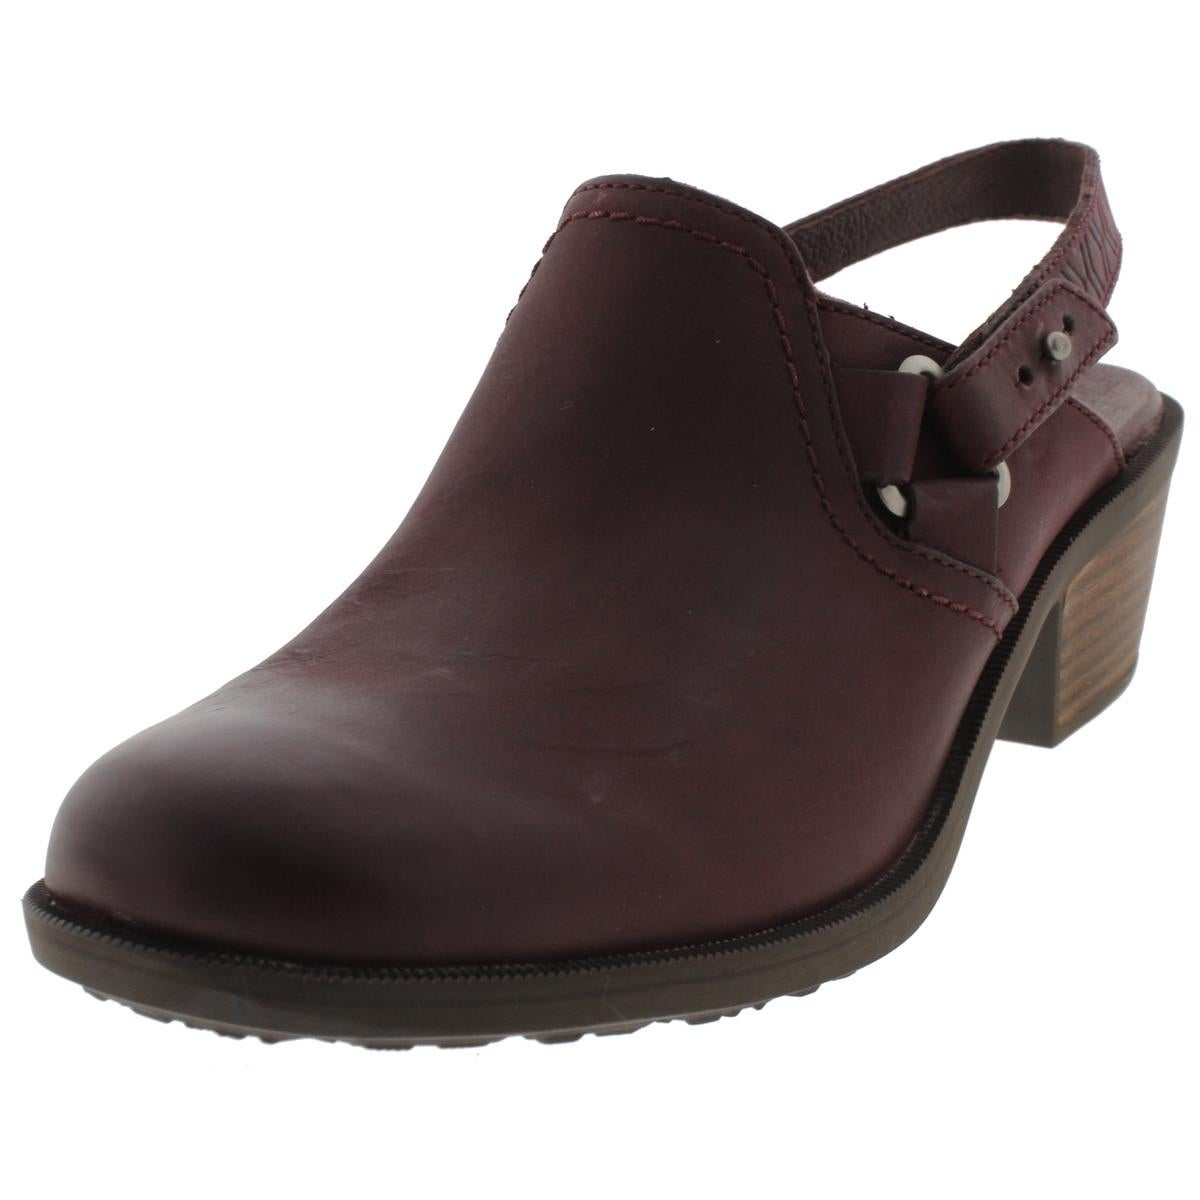 5c0ce6375fff1a Shop Teva Womens Foxy Clog Clogs Leather Slingback - Free Shipping On  Orders Over  45 - Overstock - 14518481